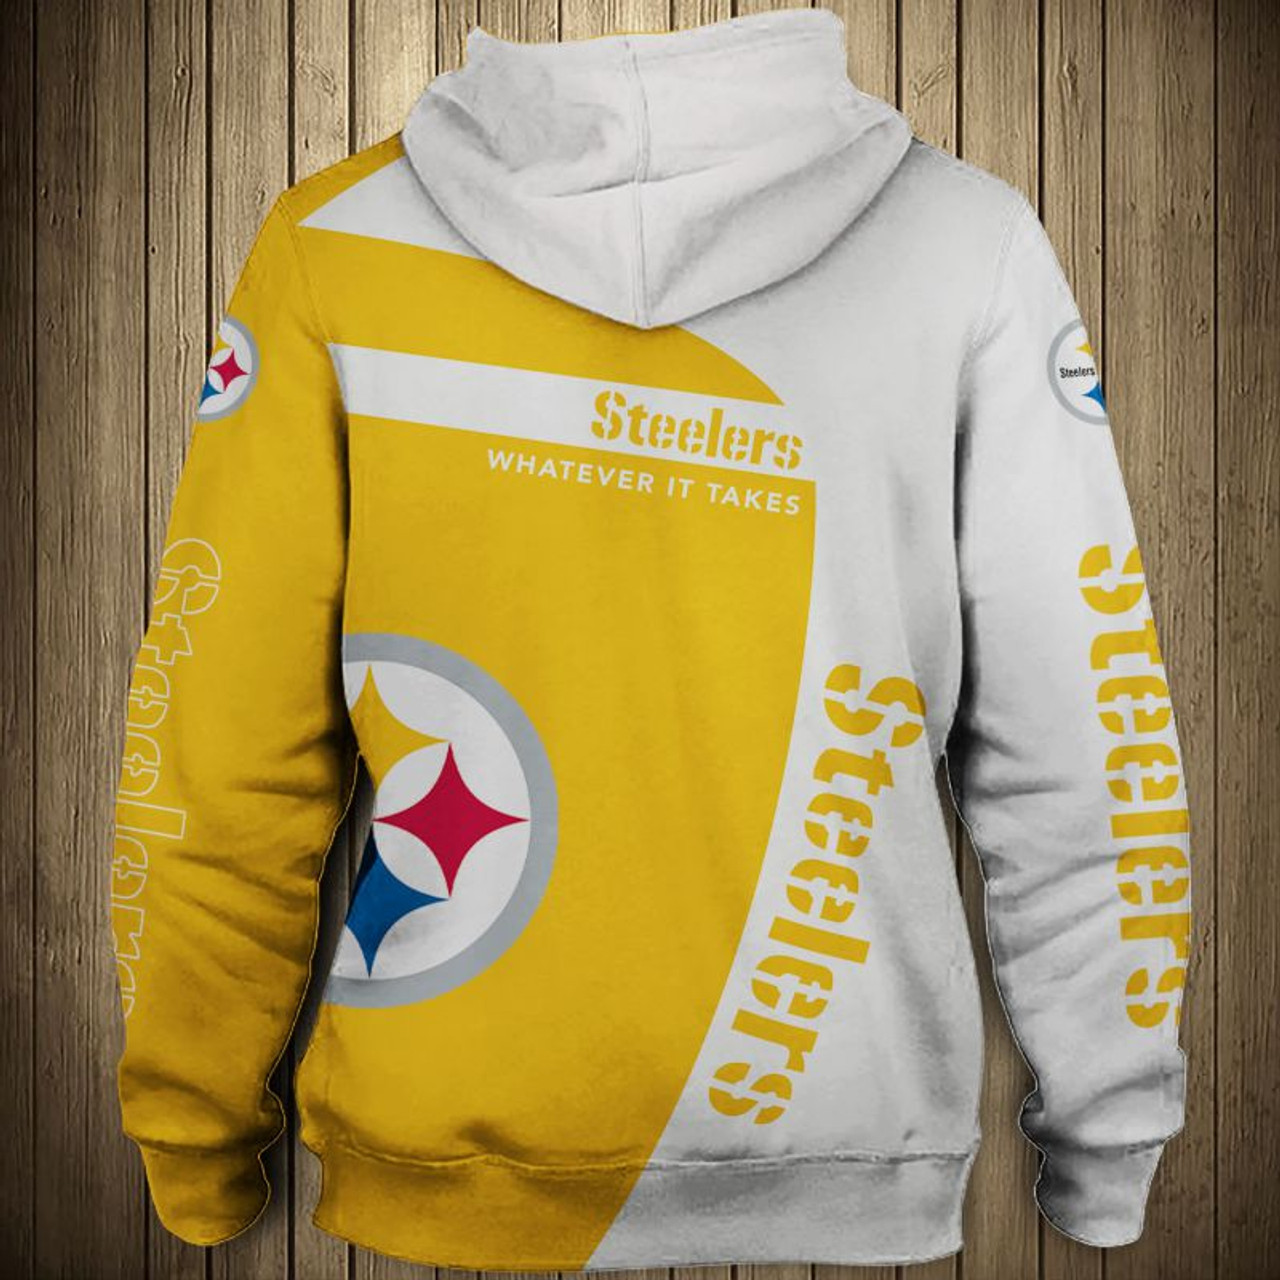 new arrivals 93ce6 3f9cc **(OFFICIAL-N.F.L.PITTSBURGH-STEELERS-ZIPPERED-HOODIES/3D-CUSTOM-STEELERS-LOGOS  & OFFICIAL-STEELERS-TEAM-COLORS/NICE-3D-DETAILED-GRAPHIC-PRINTED-DOUBL...